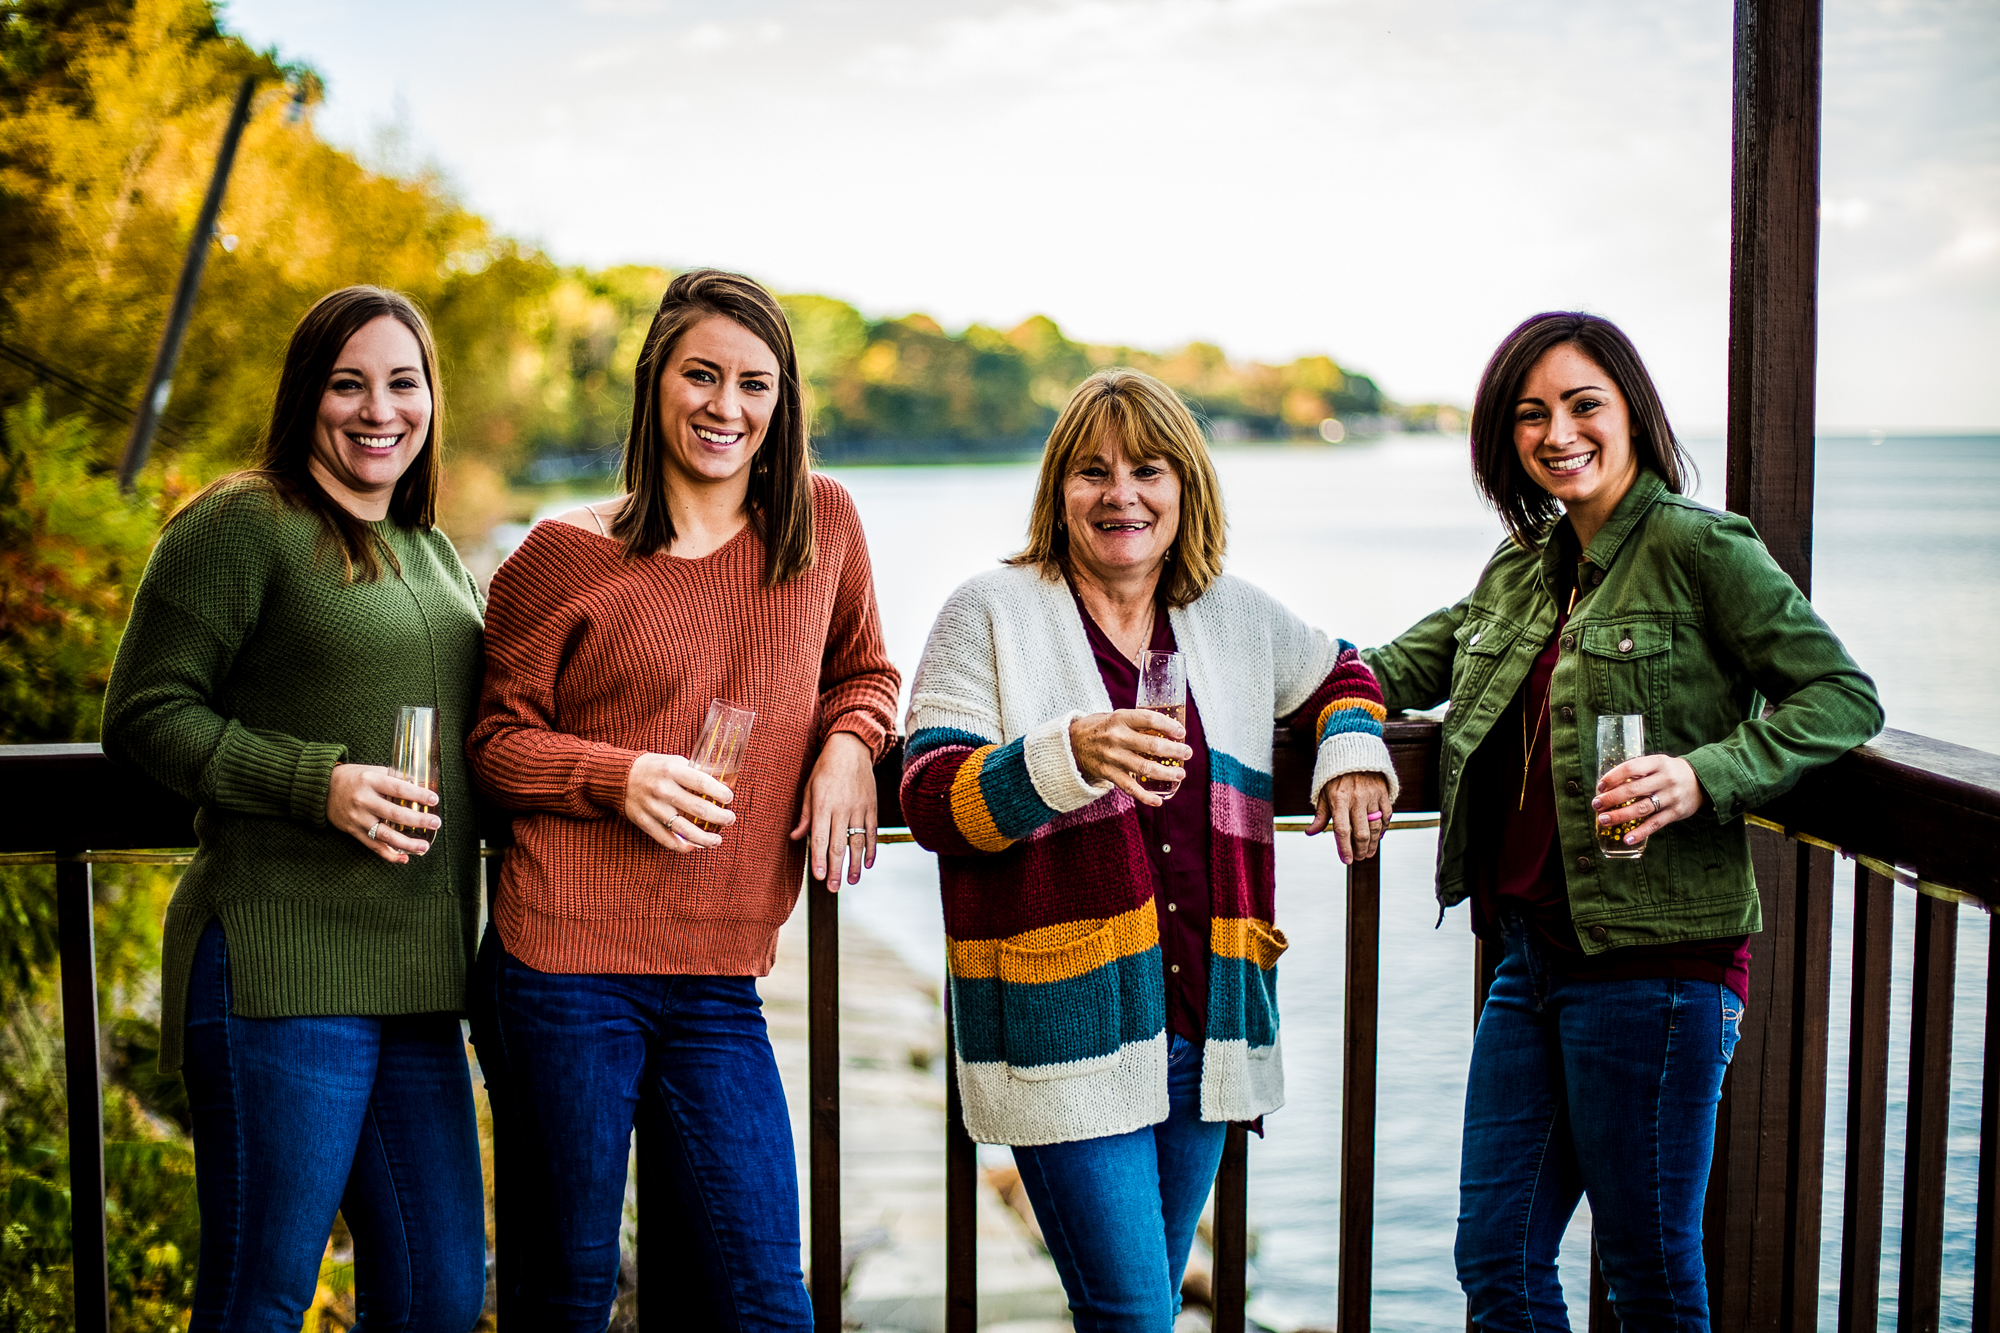 Women standing on a deck drinking champagne in North East, PA